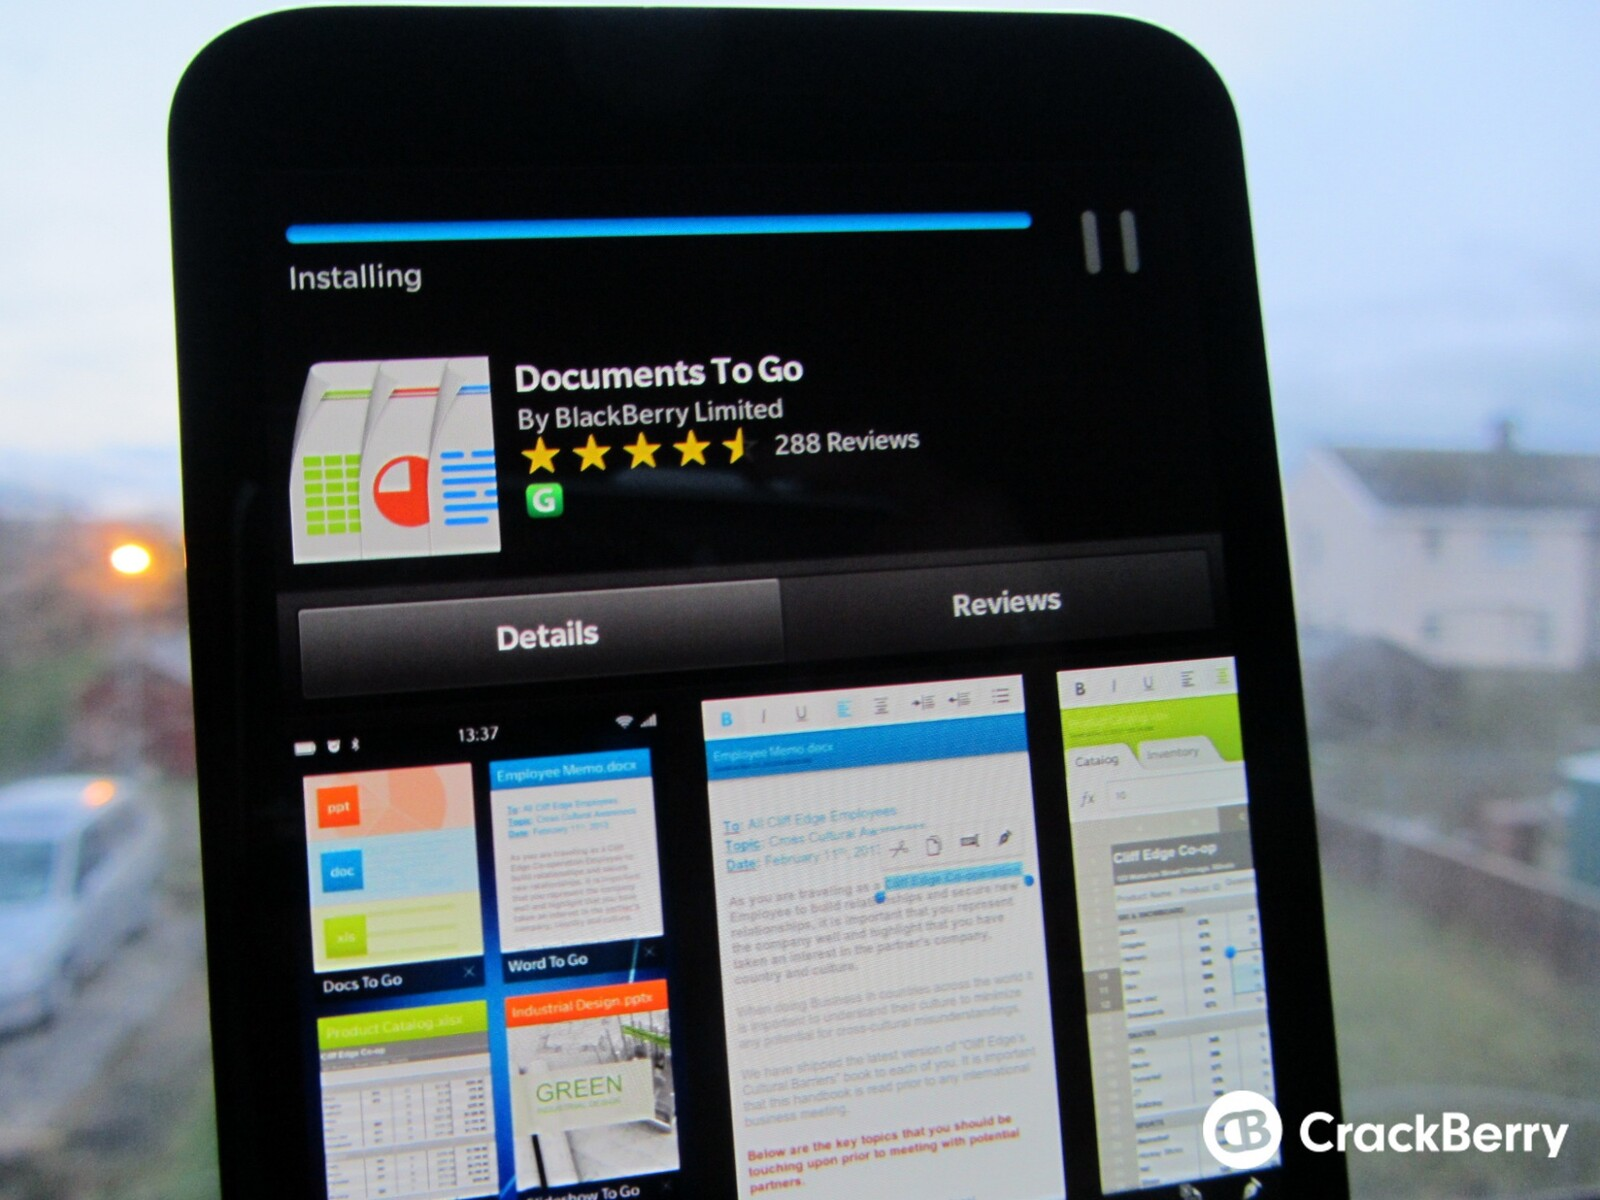 DOCUMENTS TO GO BLACKBERRY FREE DOWNLOAD